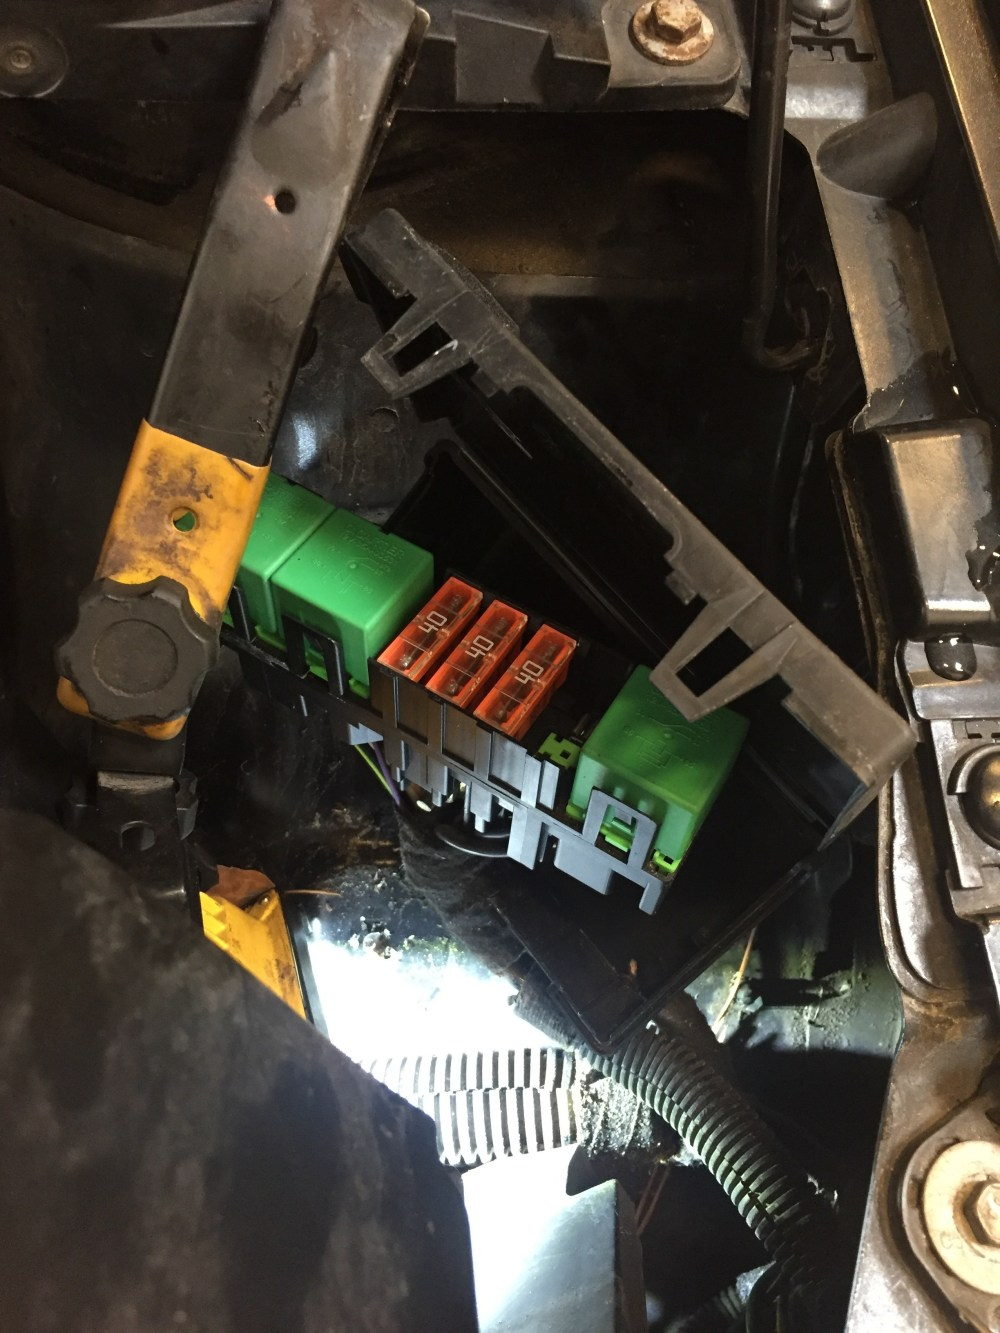 medium resolution of so its fixed now until the snapped glow plug again shorts to ground by the way i got an engine warning light and fault code p1351 2 i think